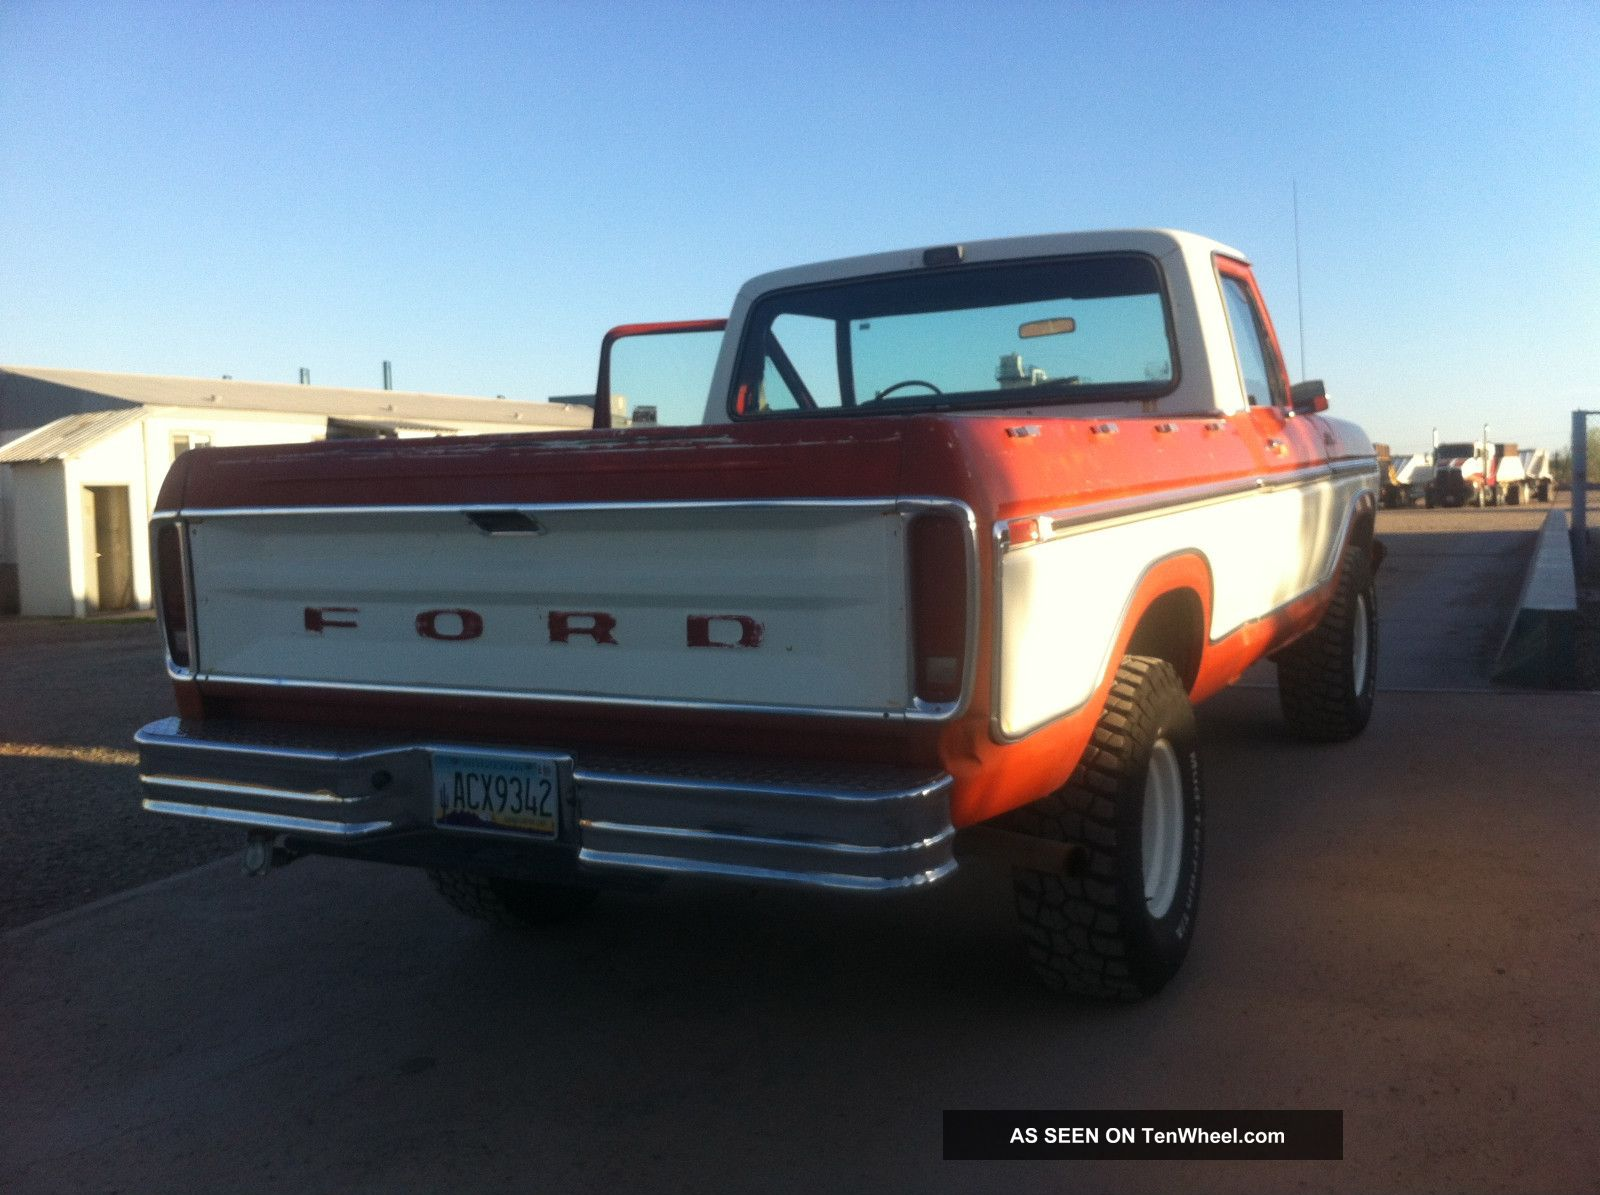 Ford Ranger F150 1978 4x4 Short Bed Ranger photo 3